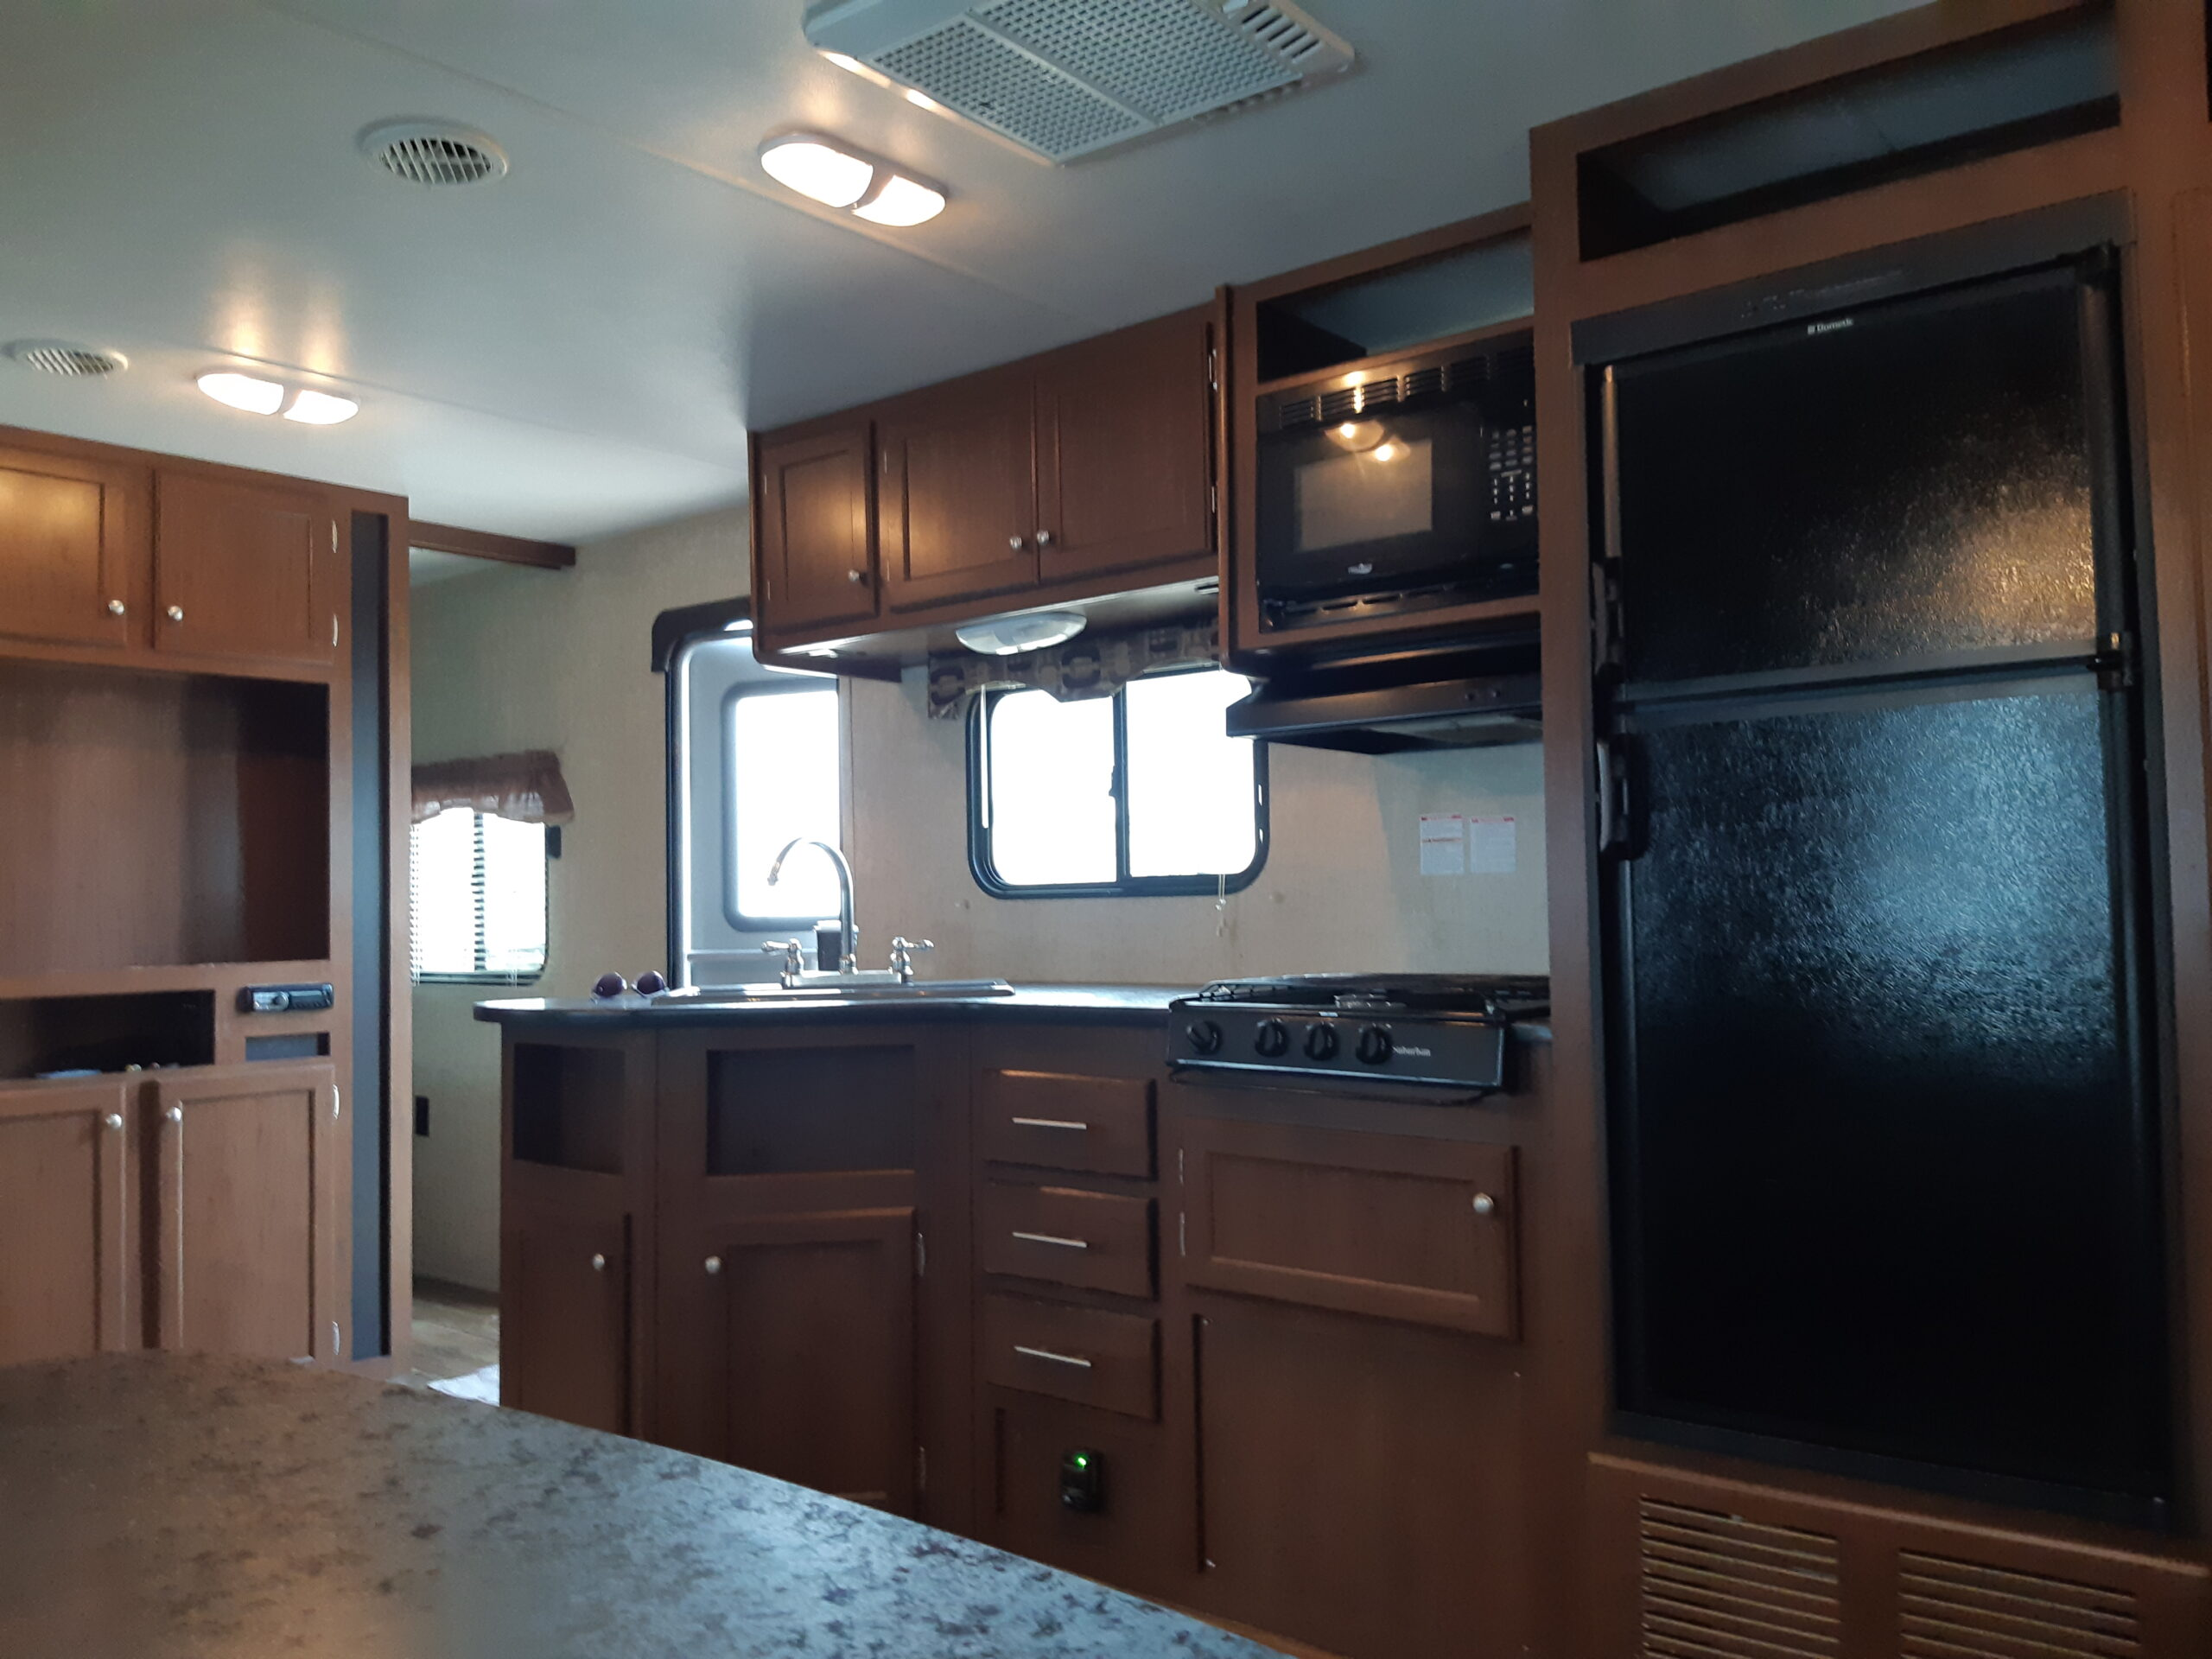 RV renovation - before of the kitchen